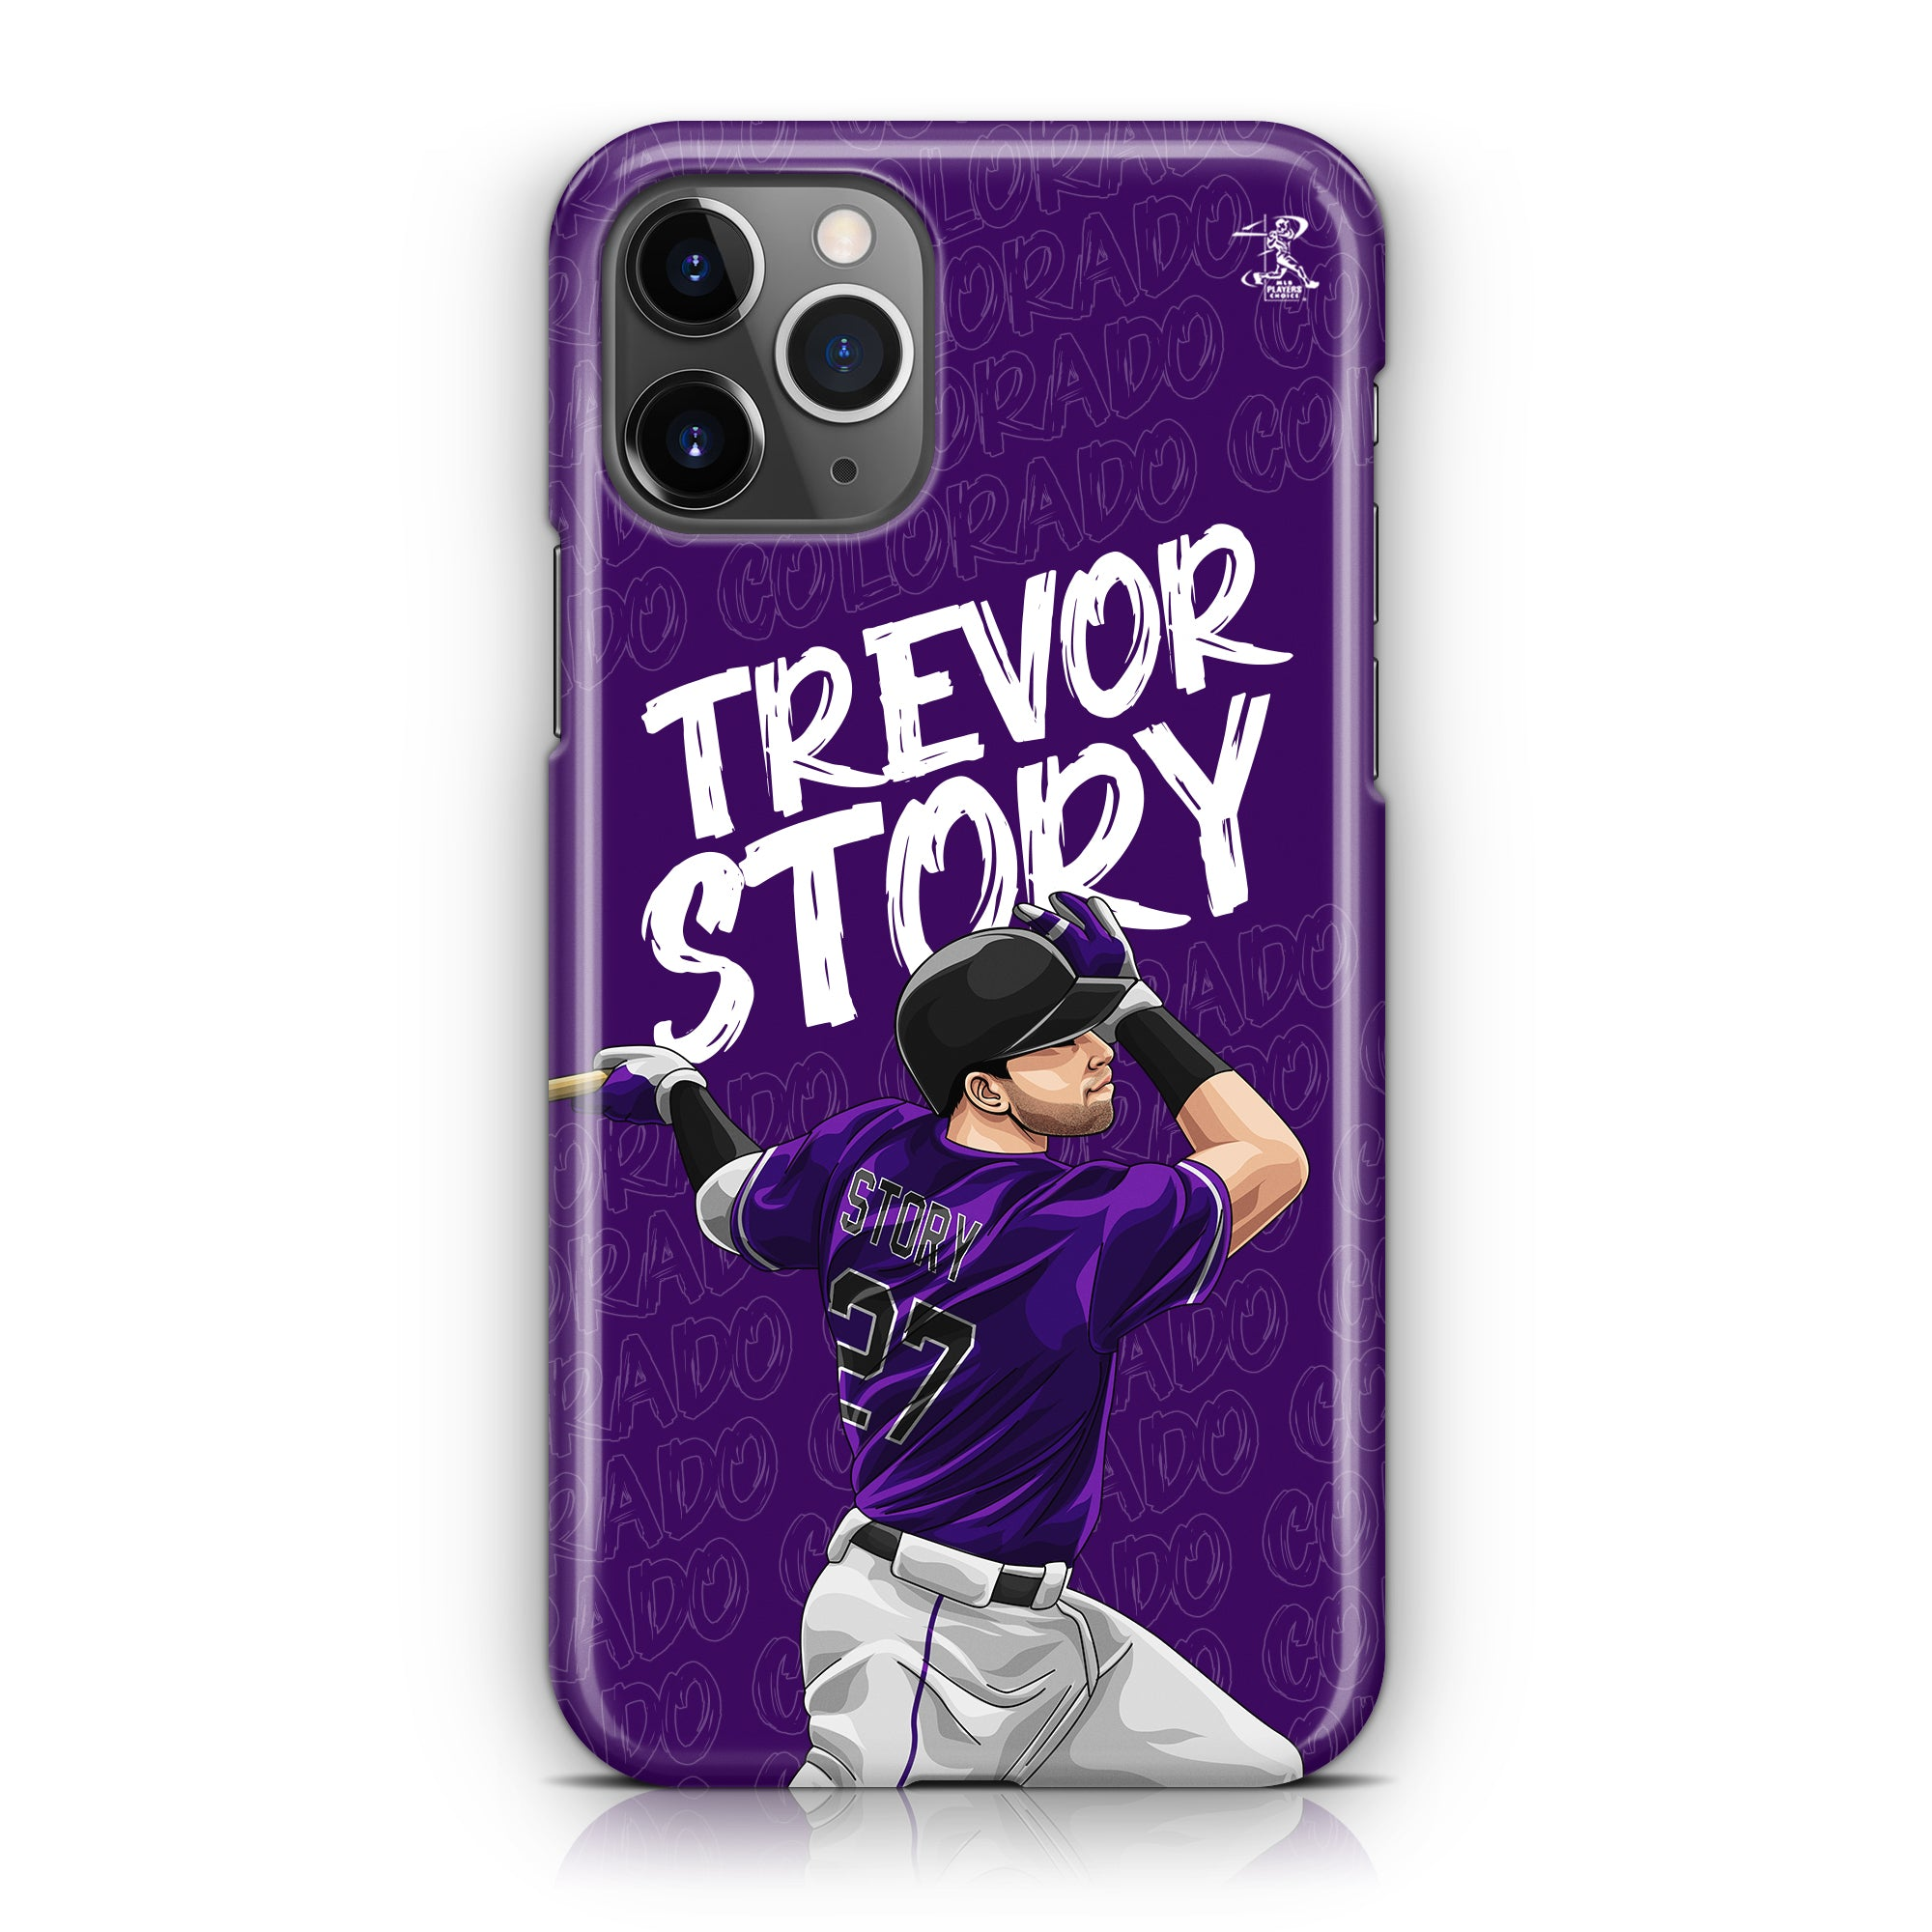 Story Star Series 2.0 Case